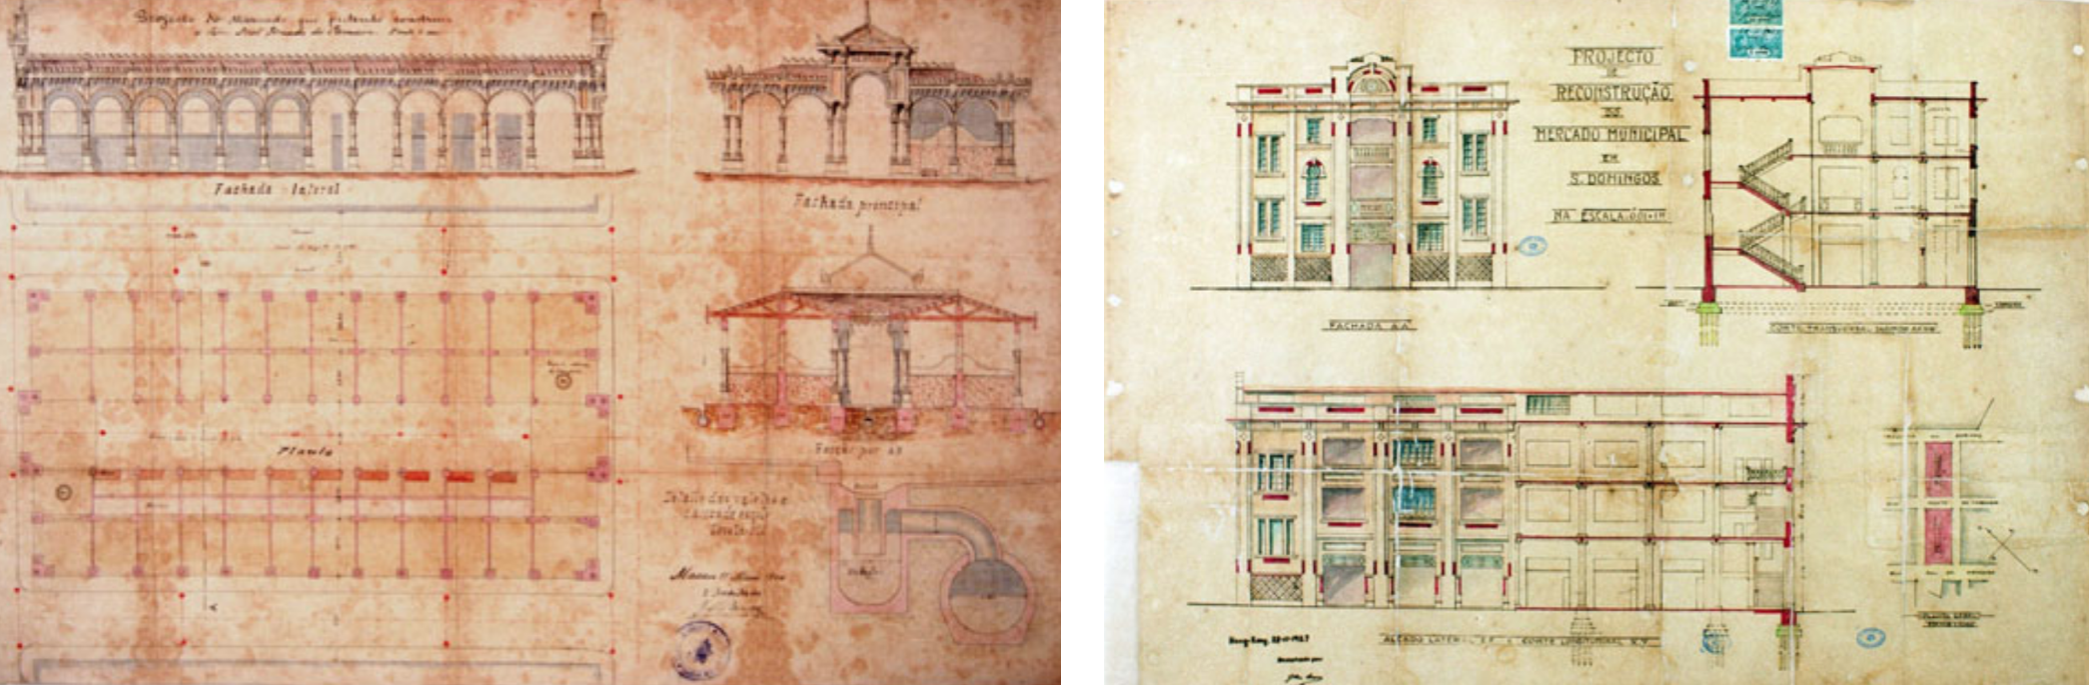 s domingos market restoration plans from 1908 and 1927 Source Macao Archives Last